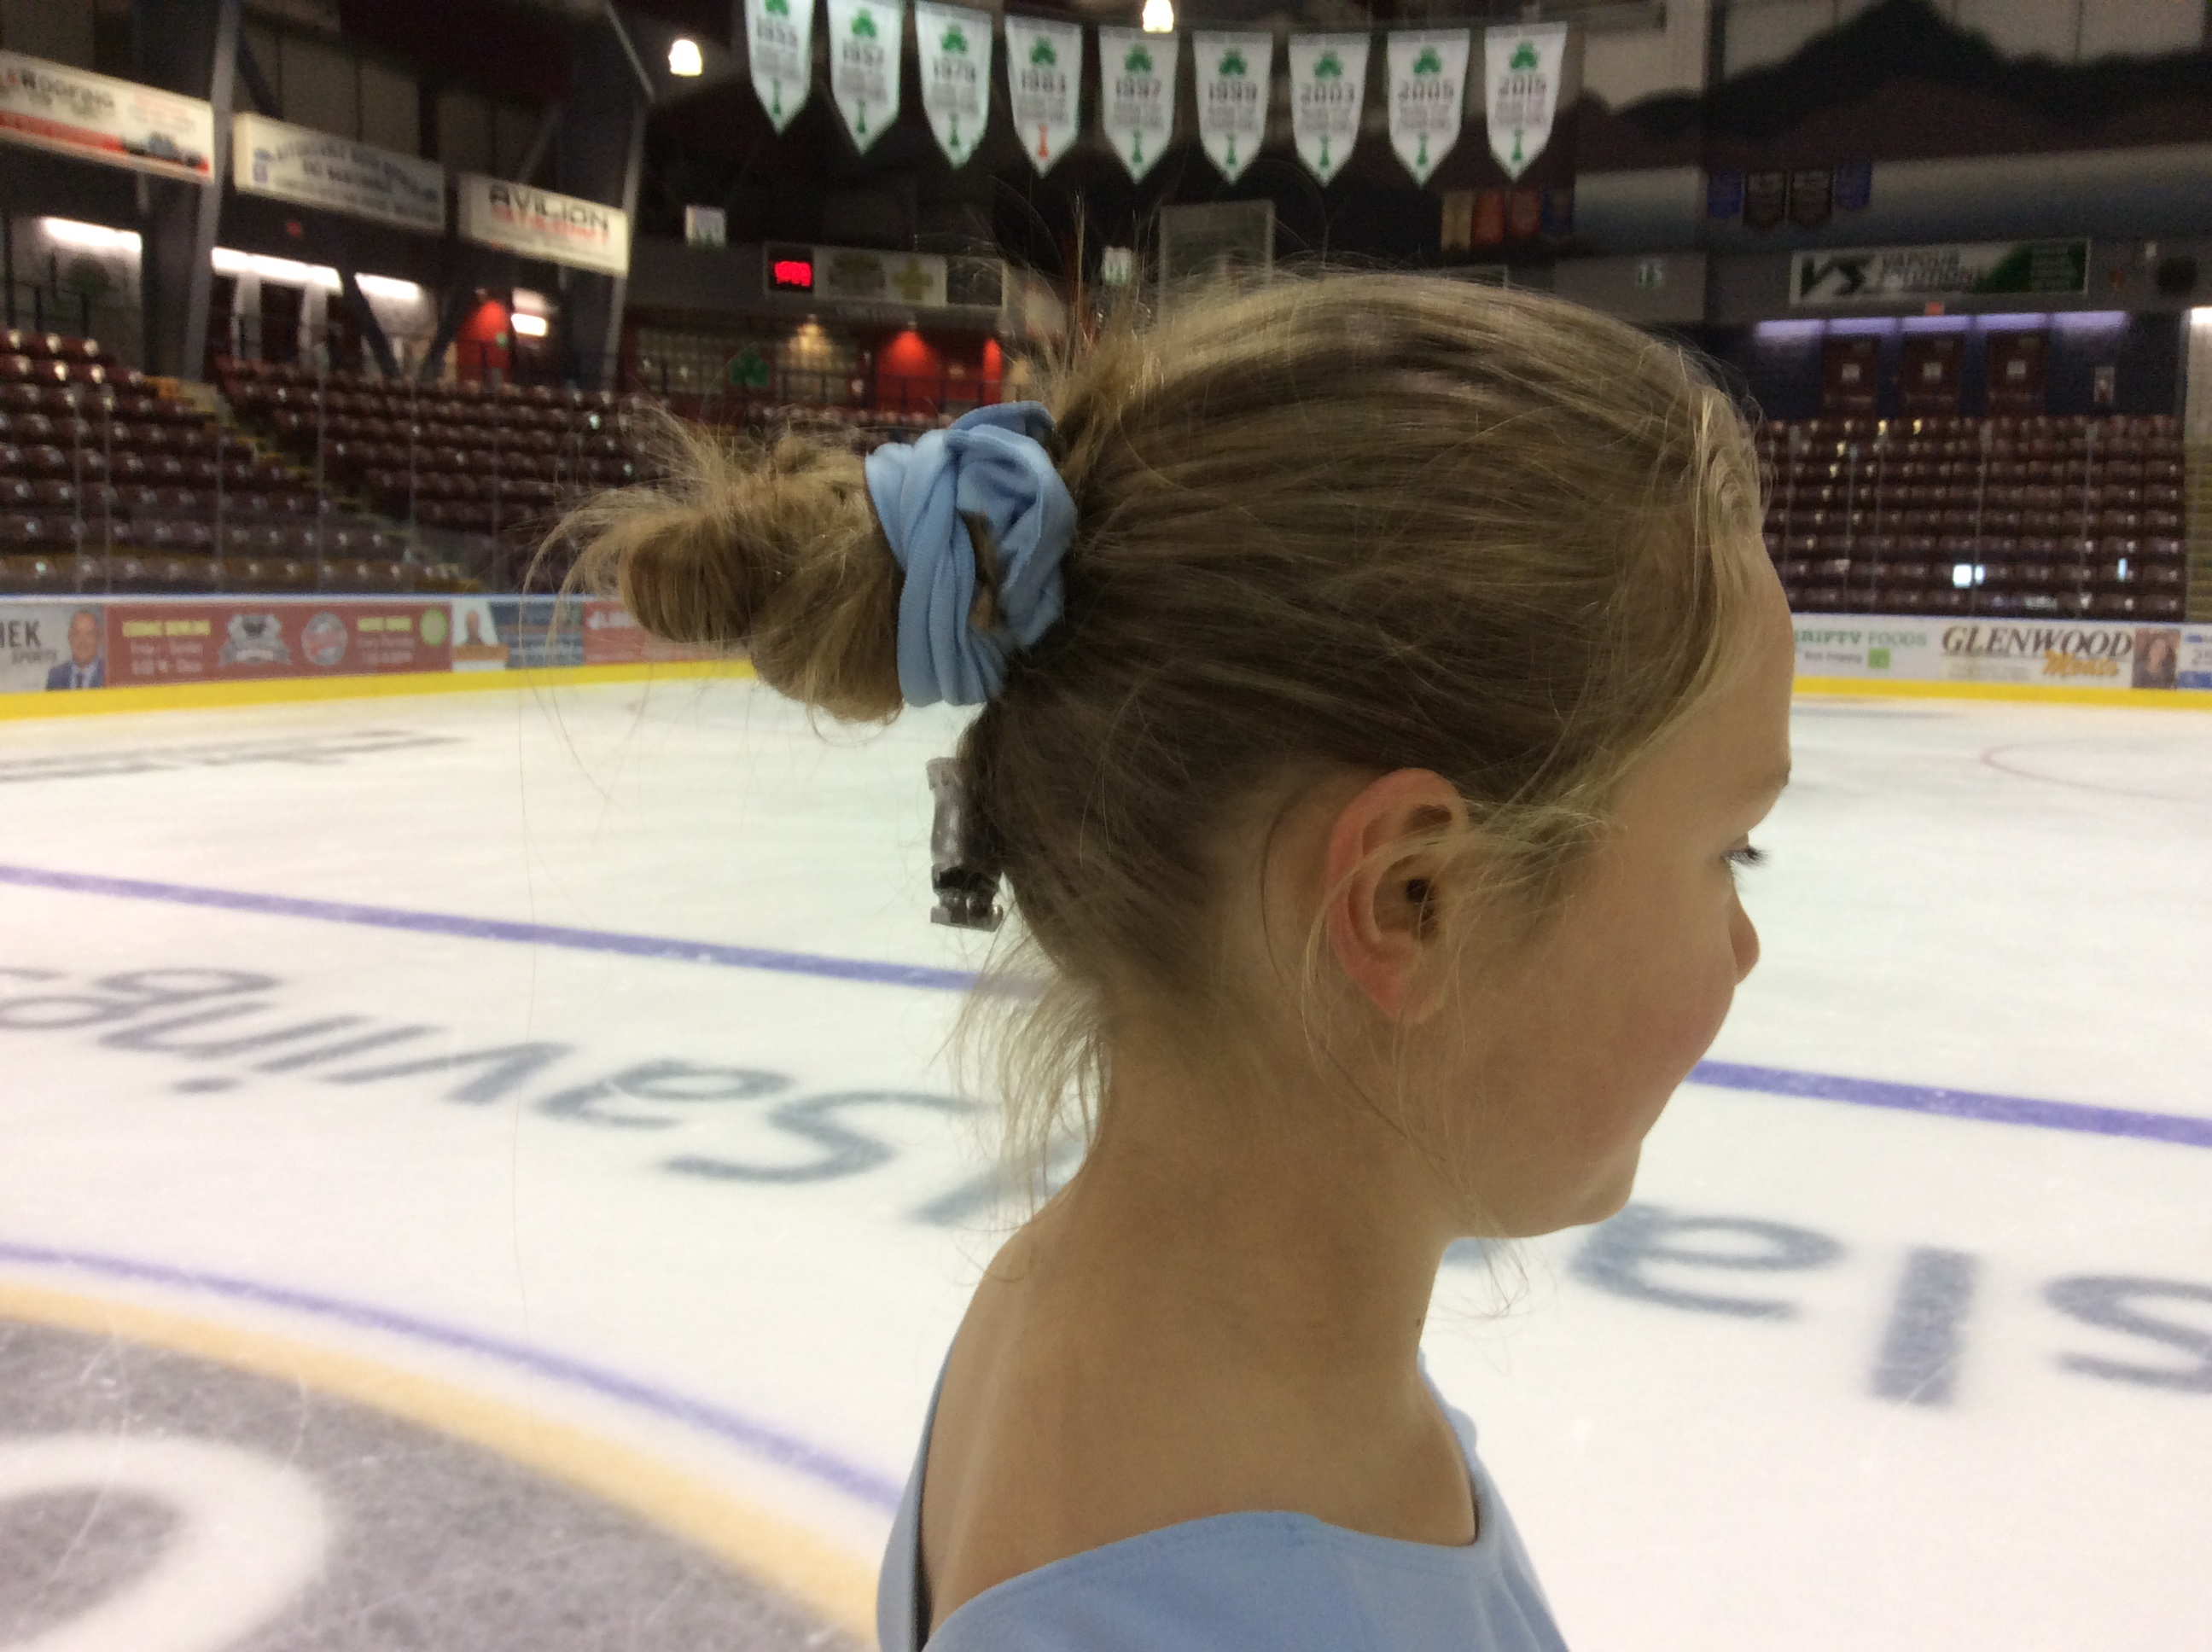 Crazy Hair Day at JDFSC Summer Skating at the Q